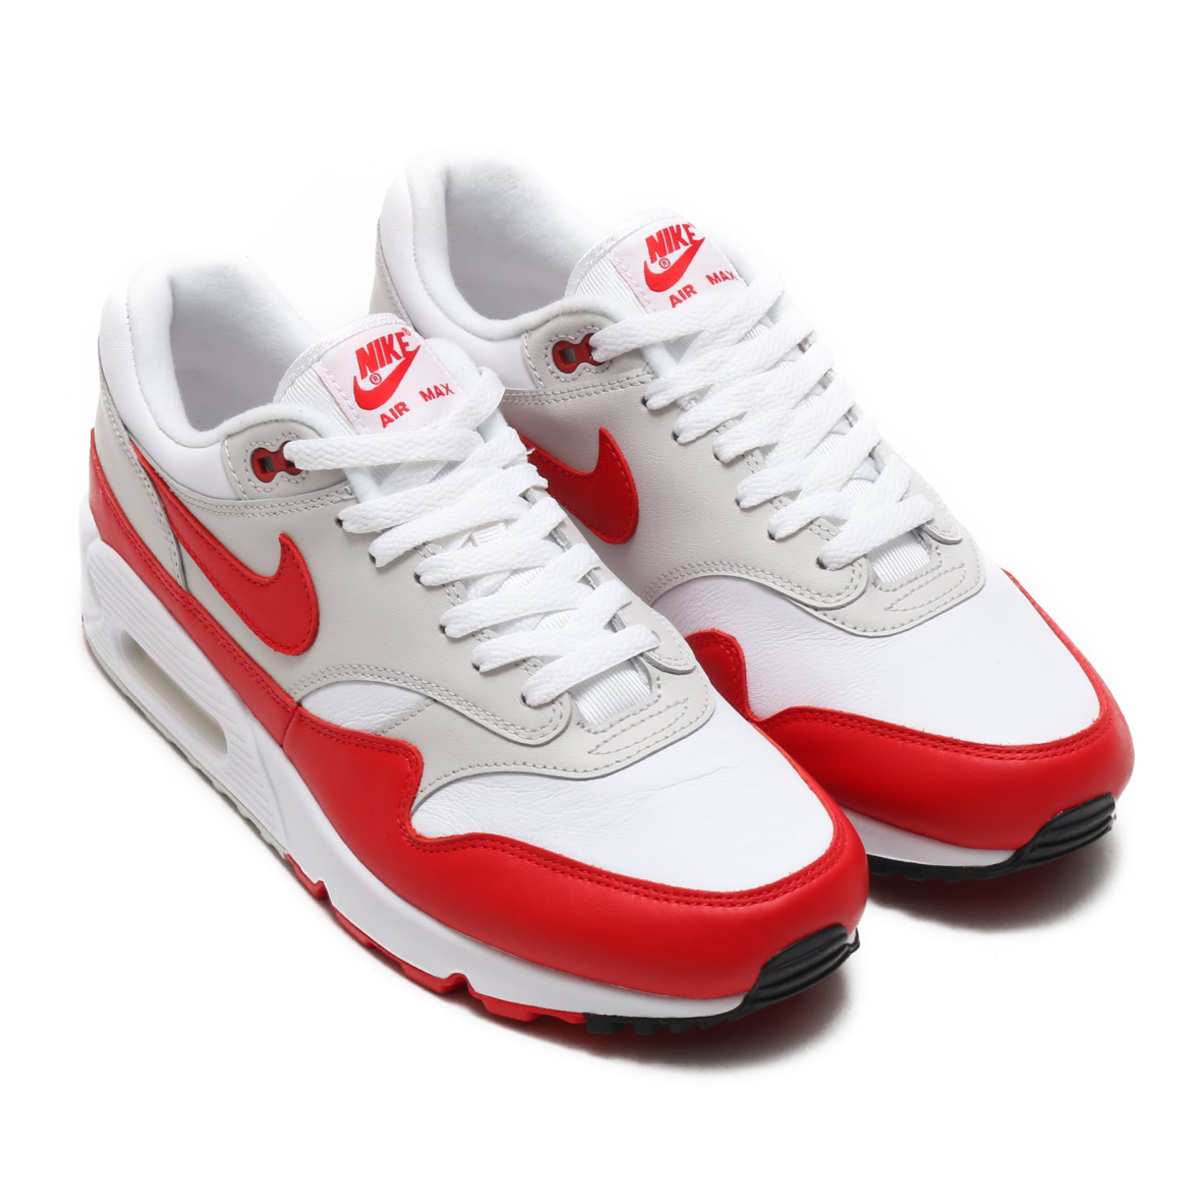 NIKE AIR MAX 90/1 (ナイキ エア マックス 90 1) (WHITE/UNIVERSITY RED-NEUTRAL GREY-BLACK)